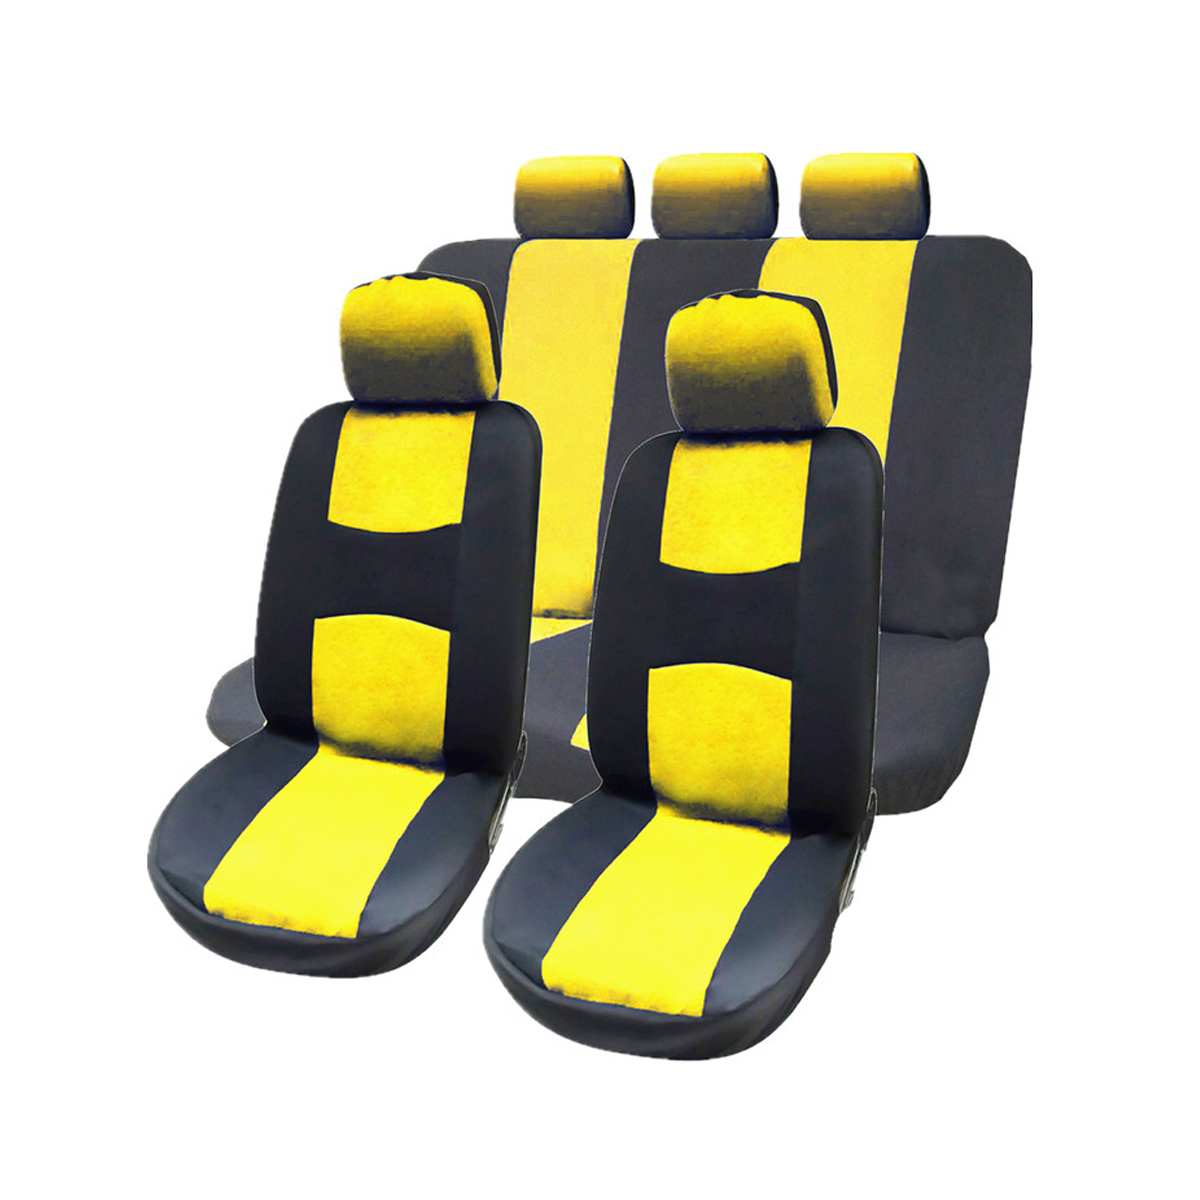 Super 9 Pcs Full Set Car Seat Covers With Detachable Headrests Universal Fit Interior Split Bench Covers Yellow Caraccident5 Cool Chair Designs And Ideas Caraccident5Info